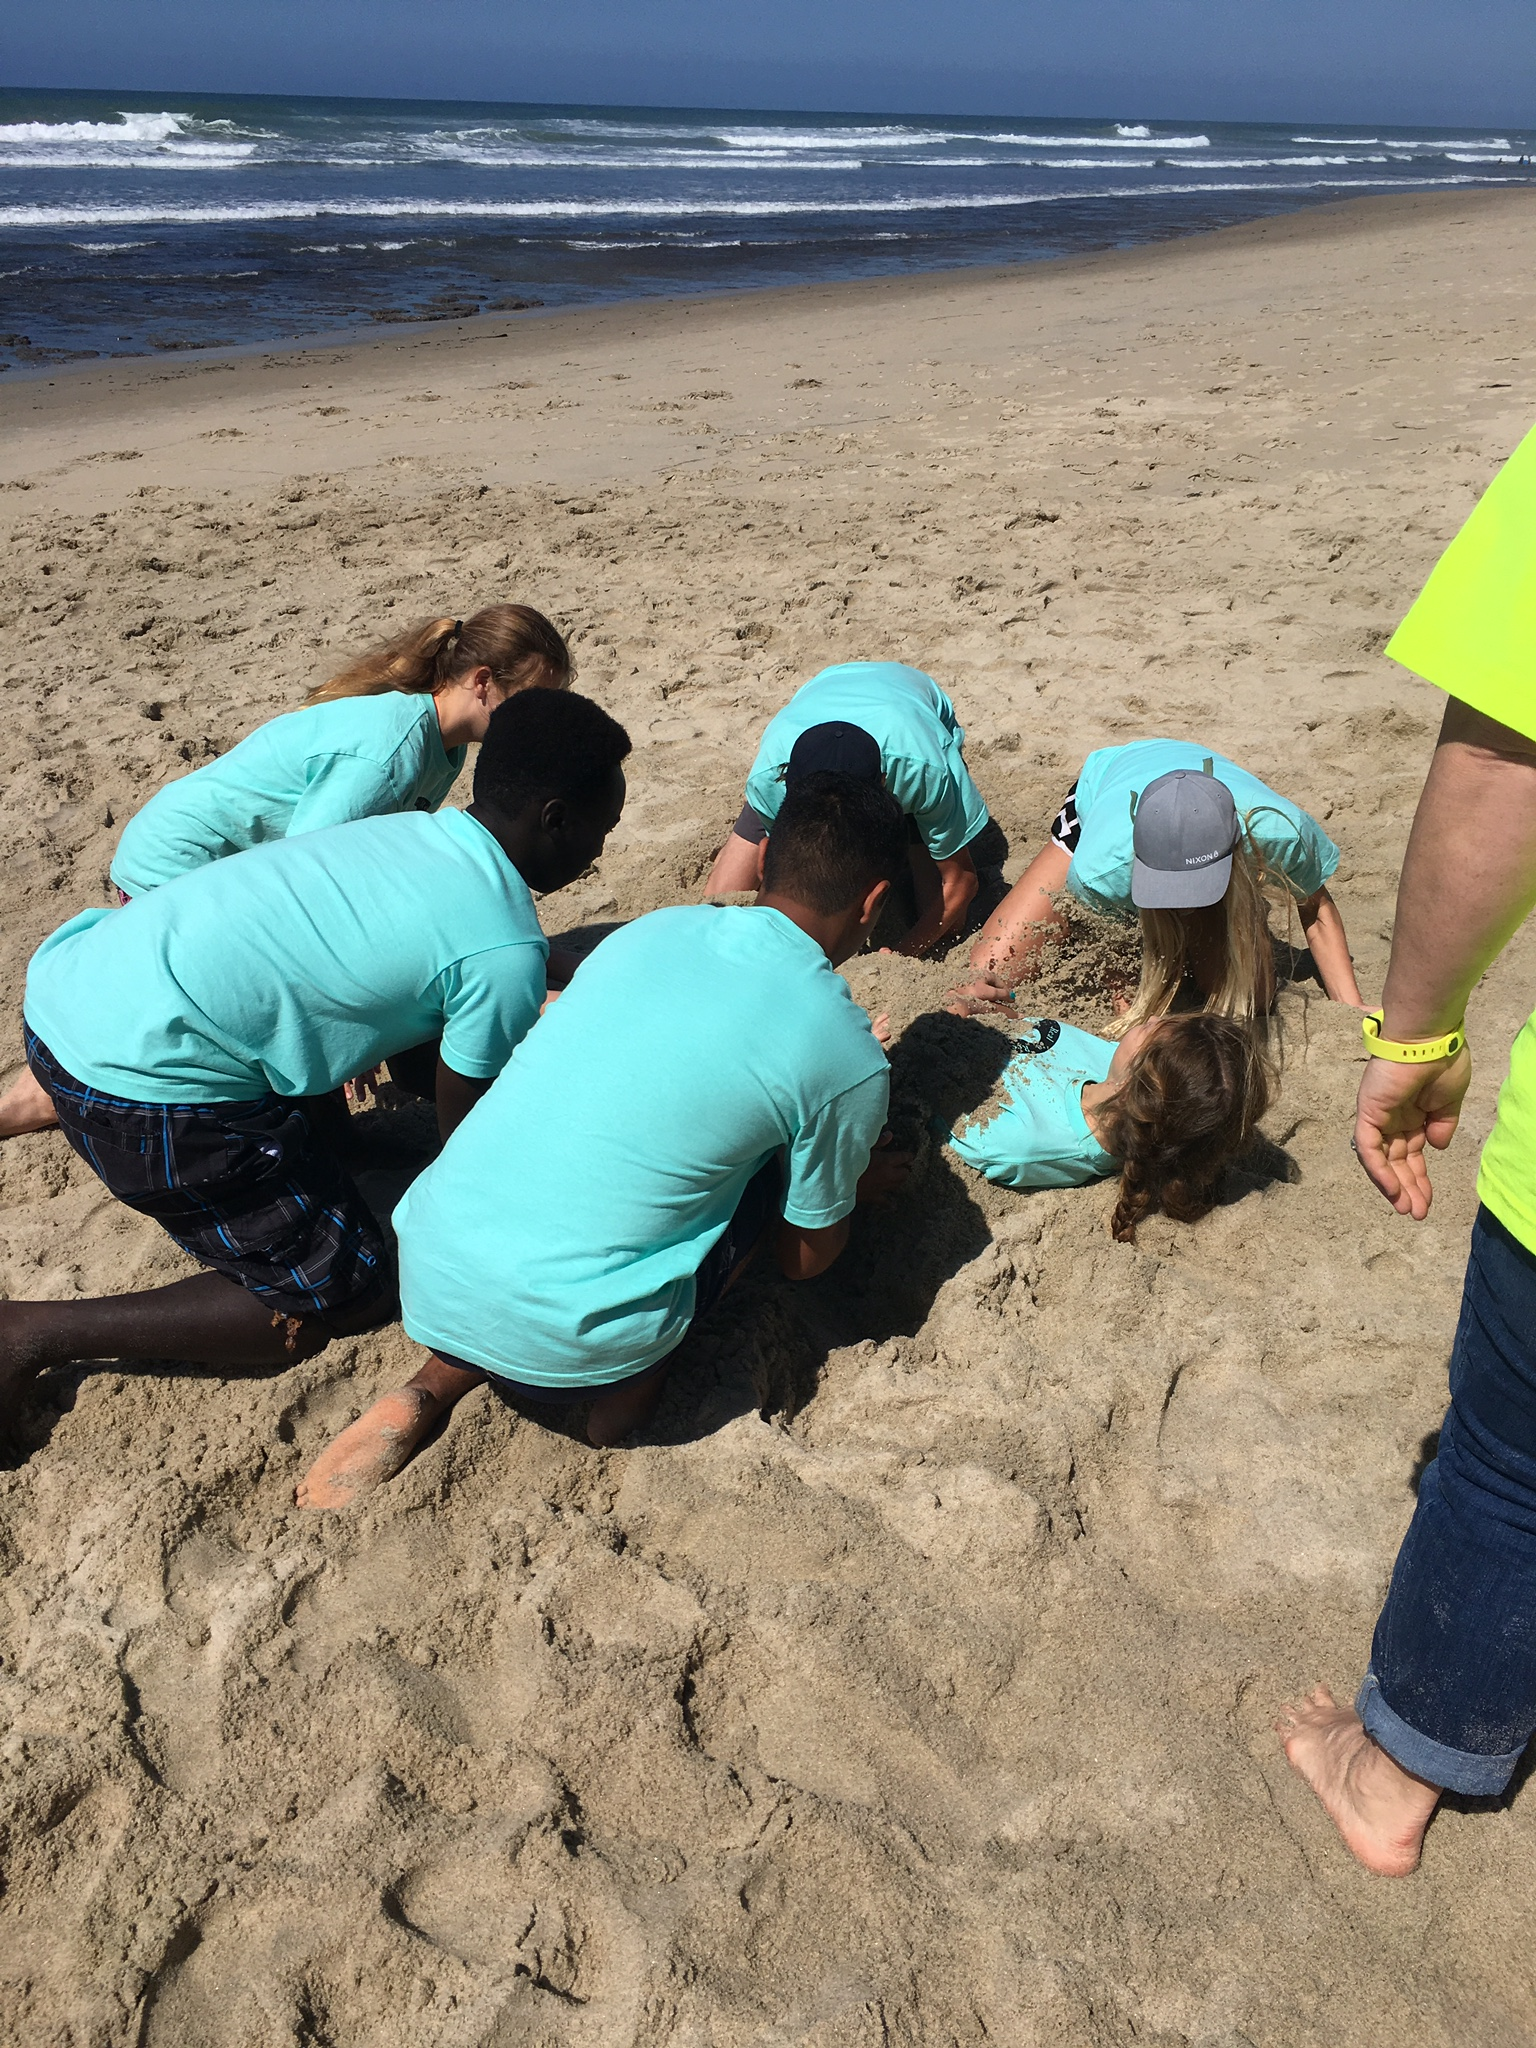 Group working together to bury teamate